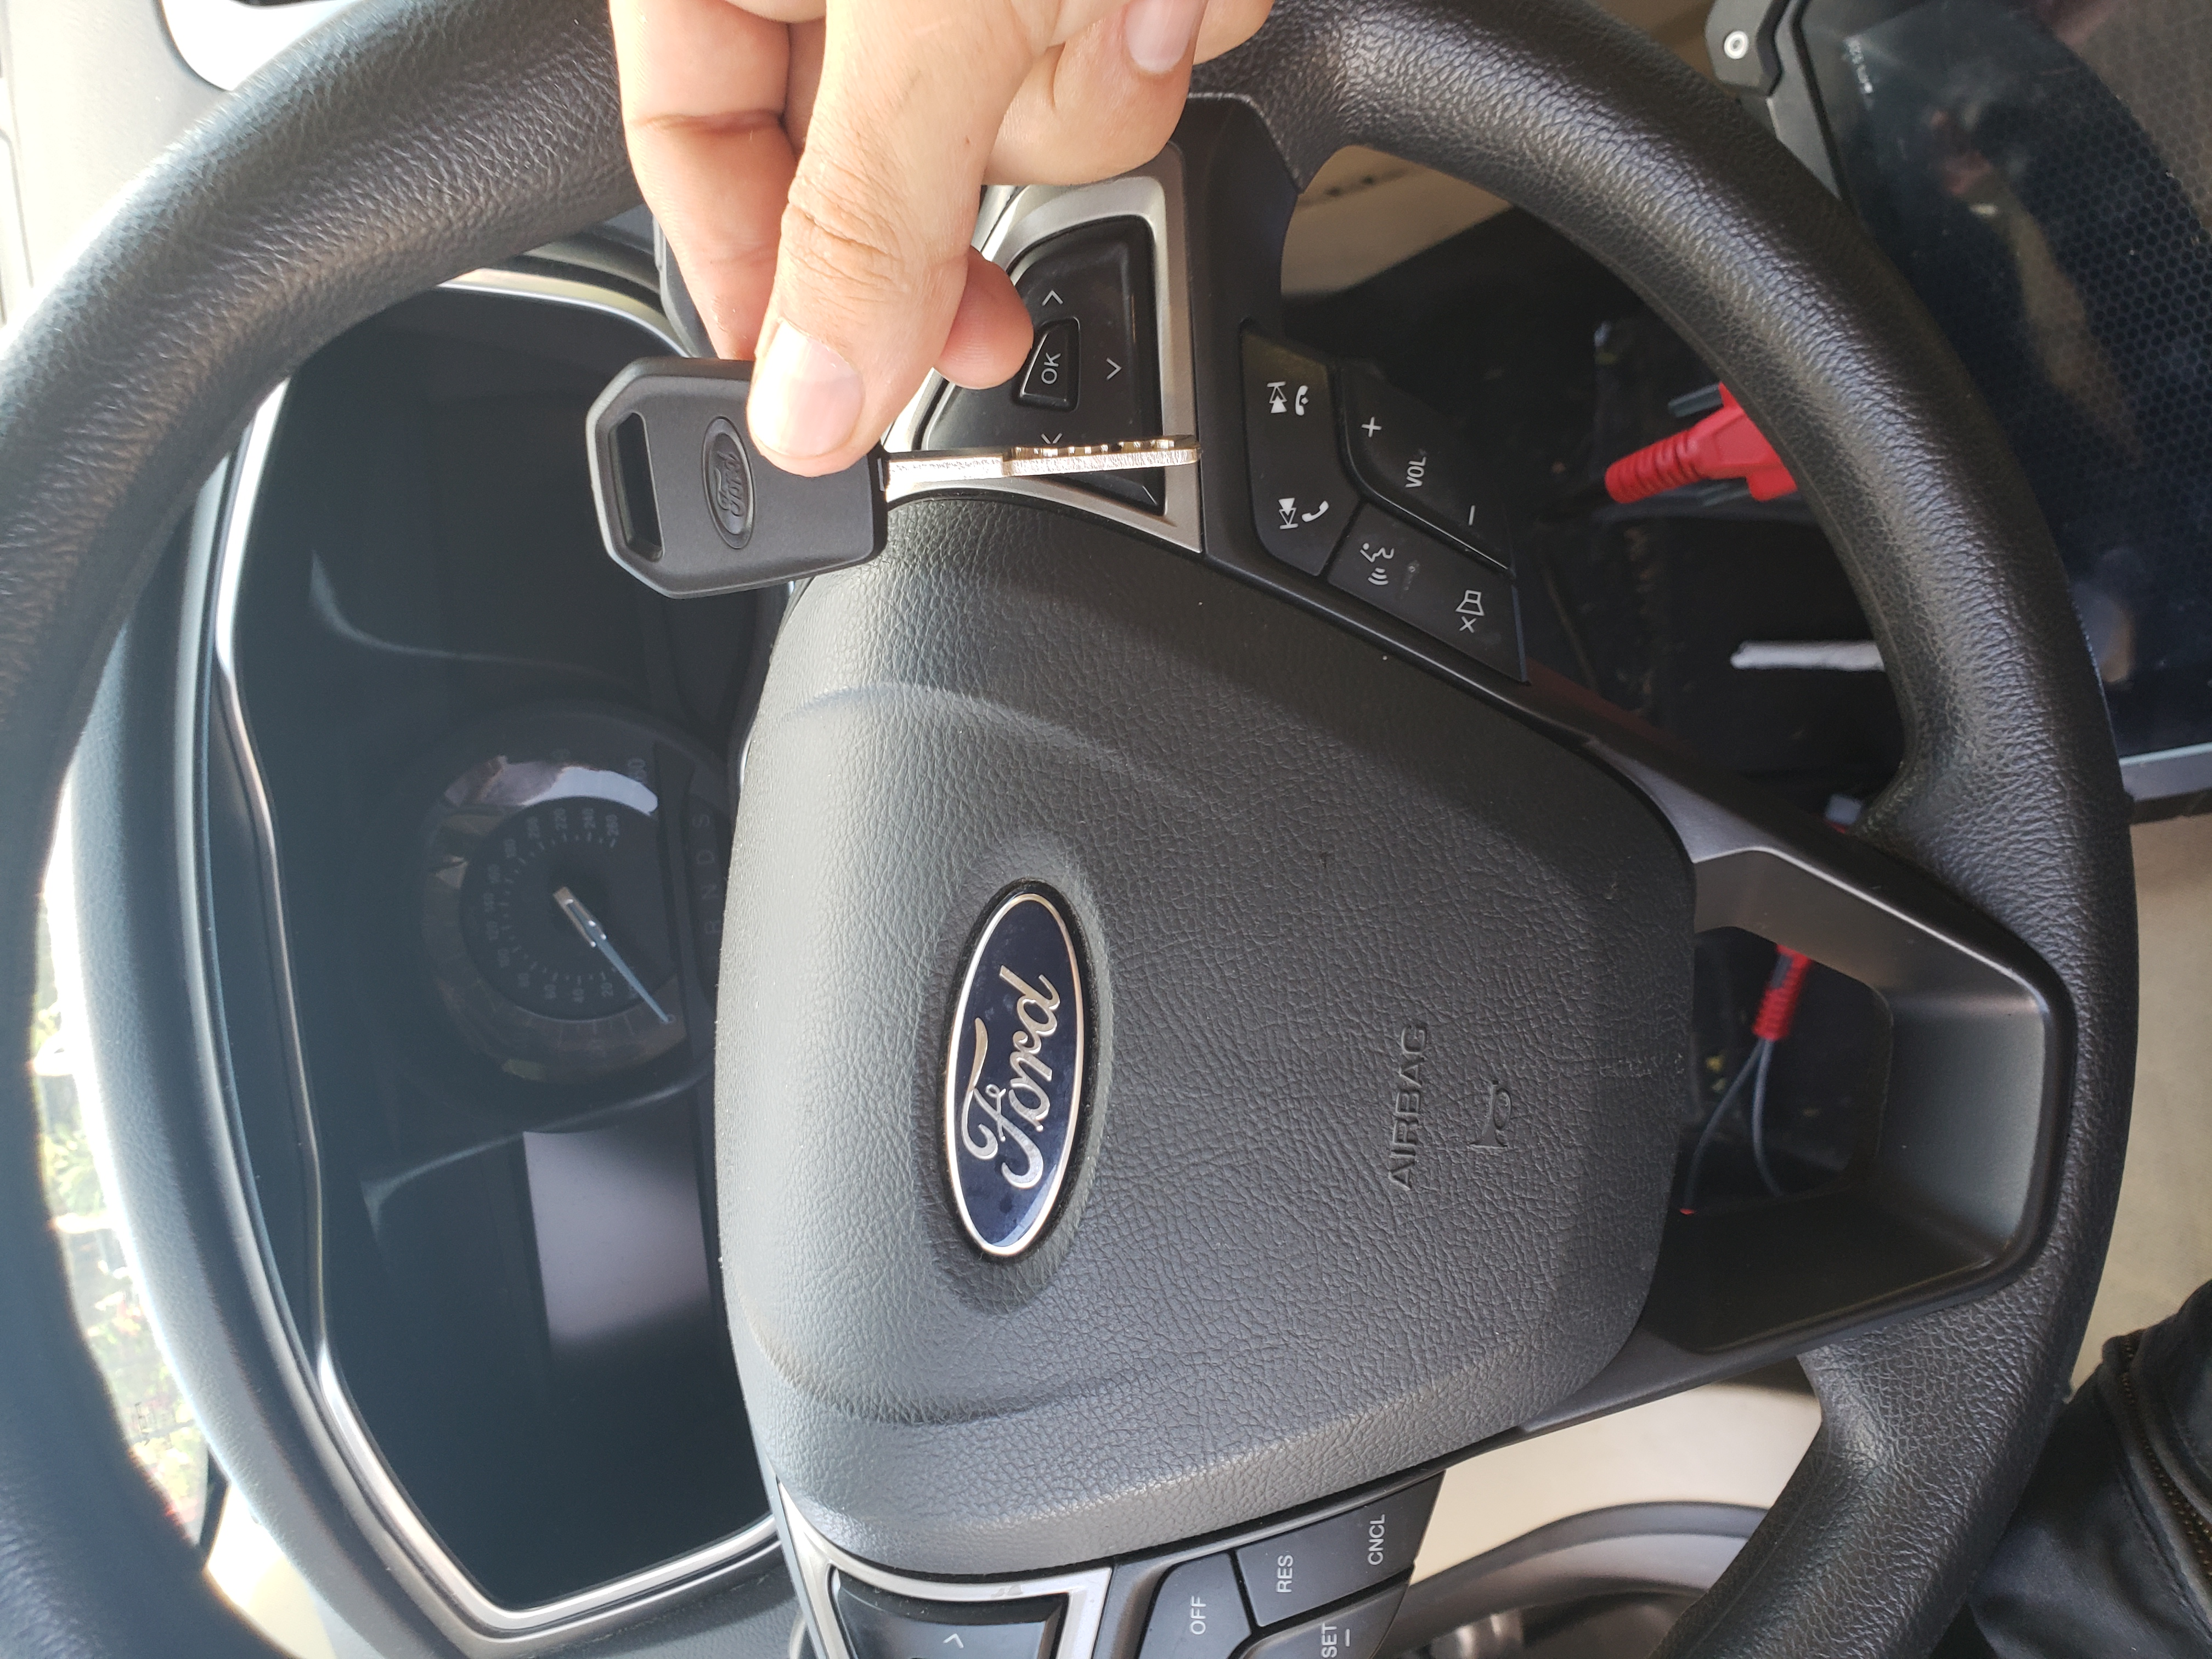 2014 Ford Fusion Car Key Replacement Houston Texas Sky Lock